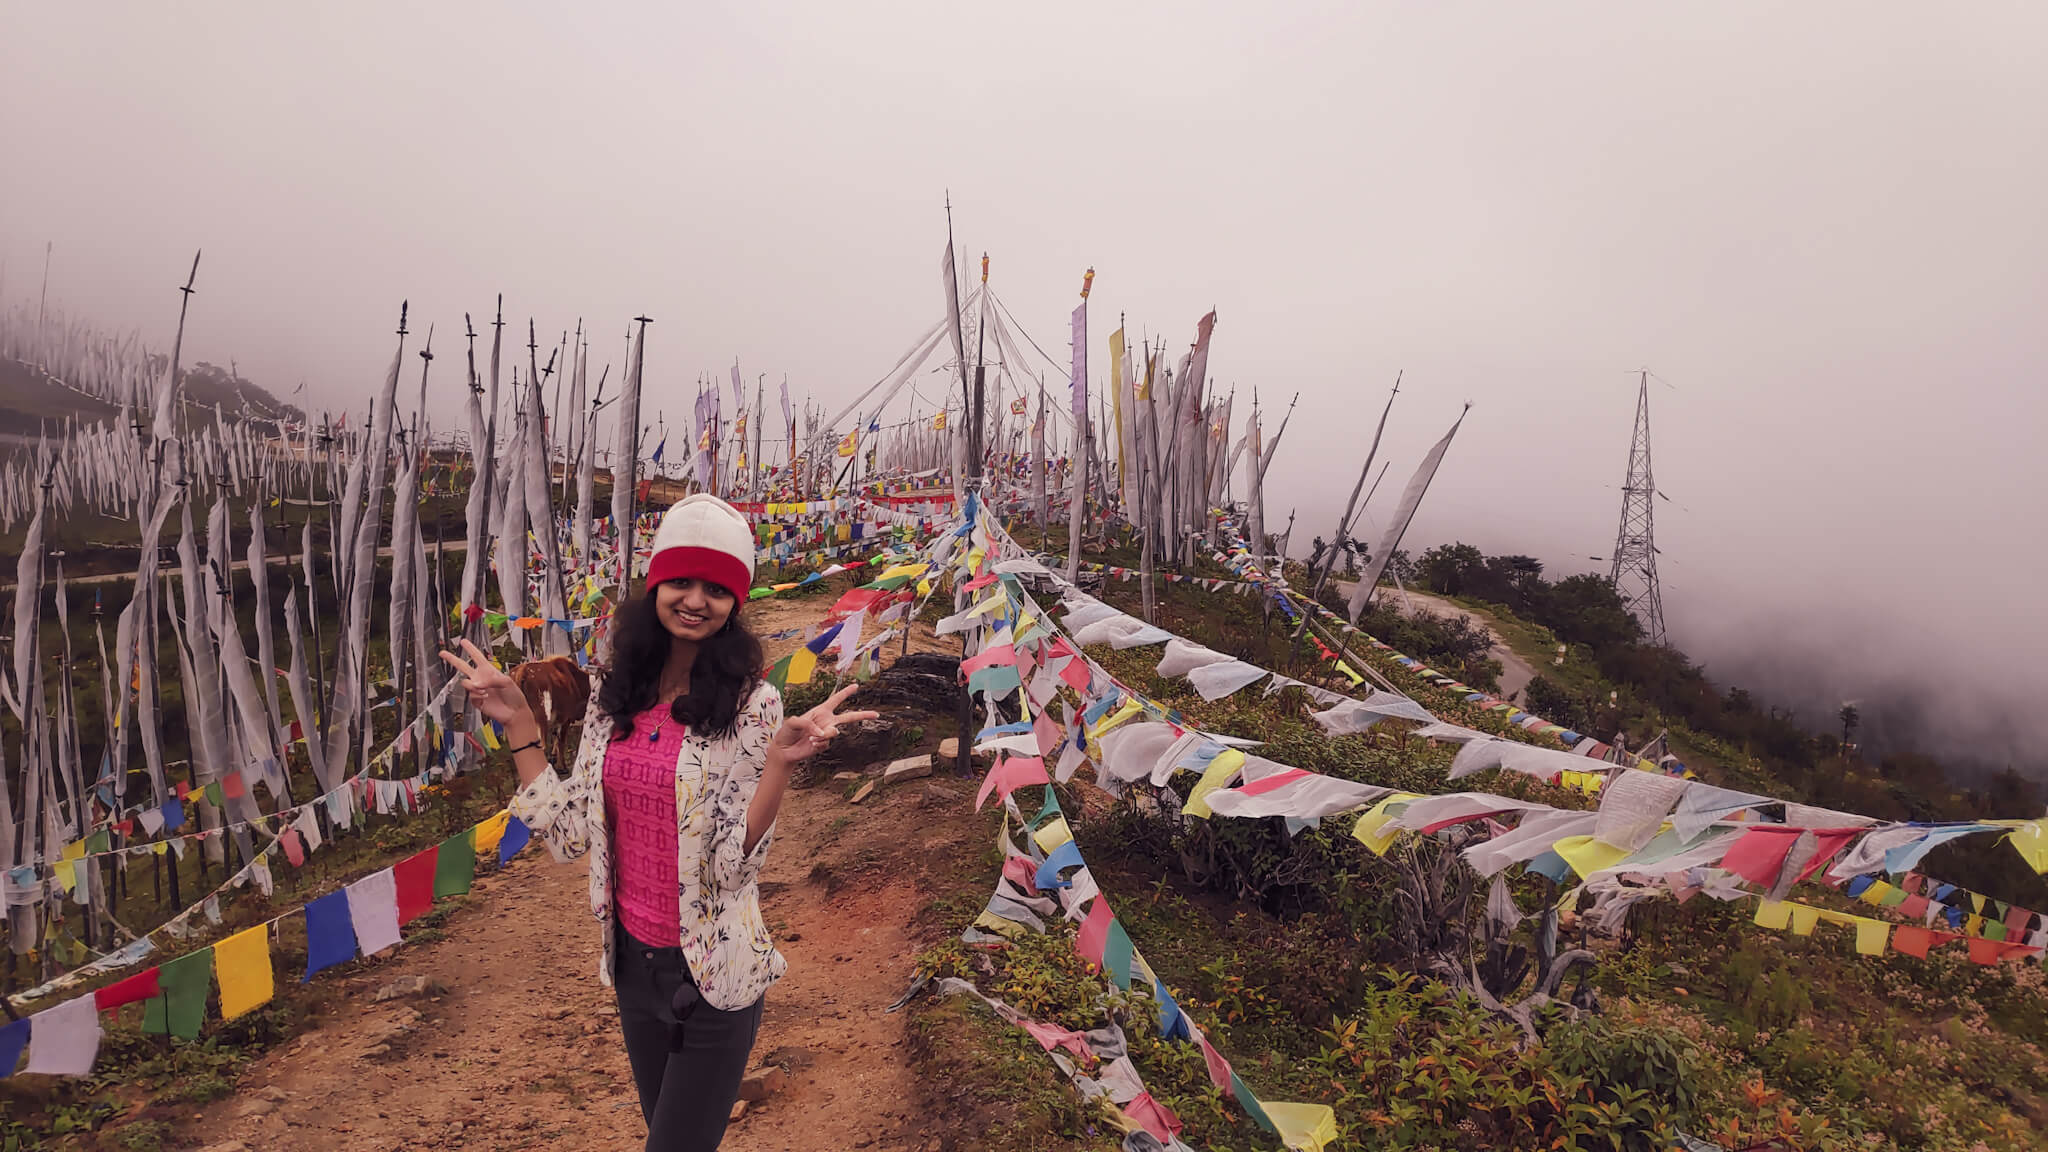 Chele La Pass While Visiting Bhutan